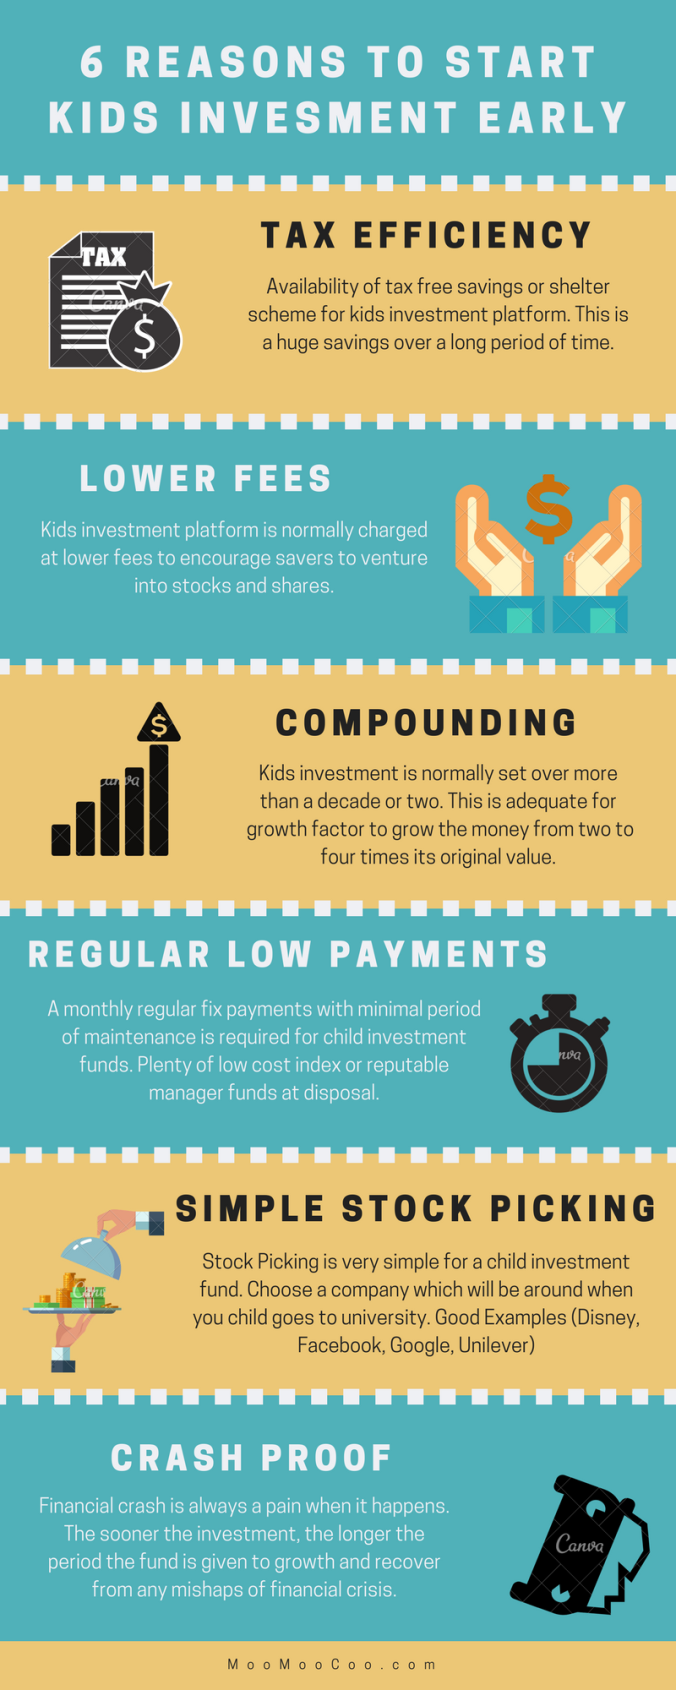 6 reasons to Start Kids Invesment Early.png